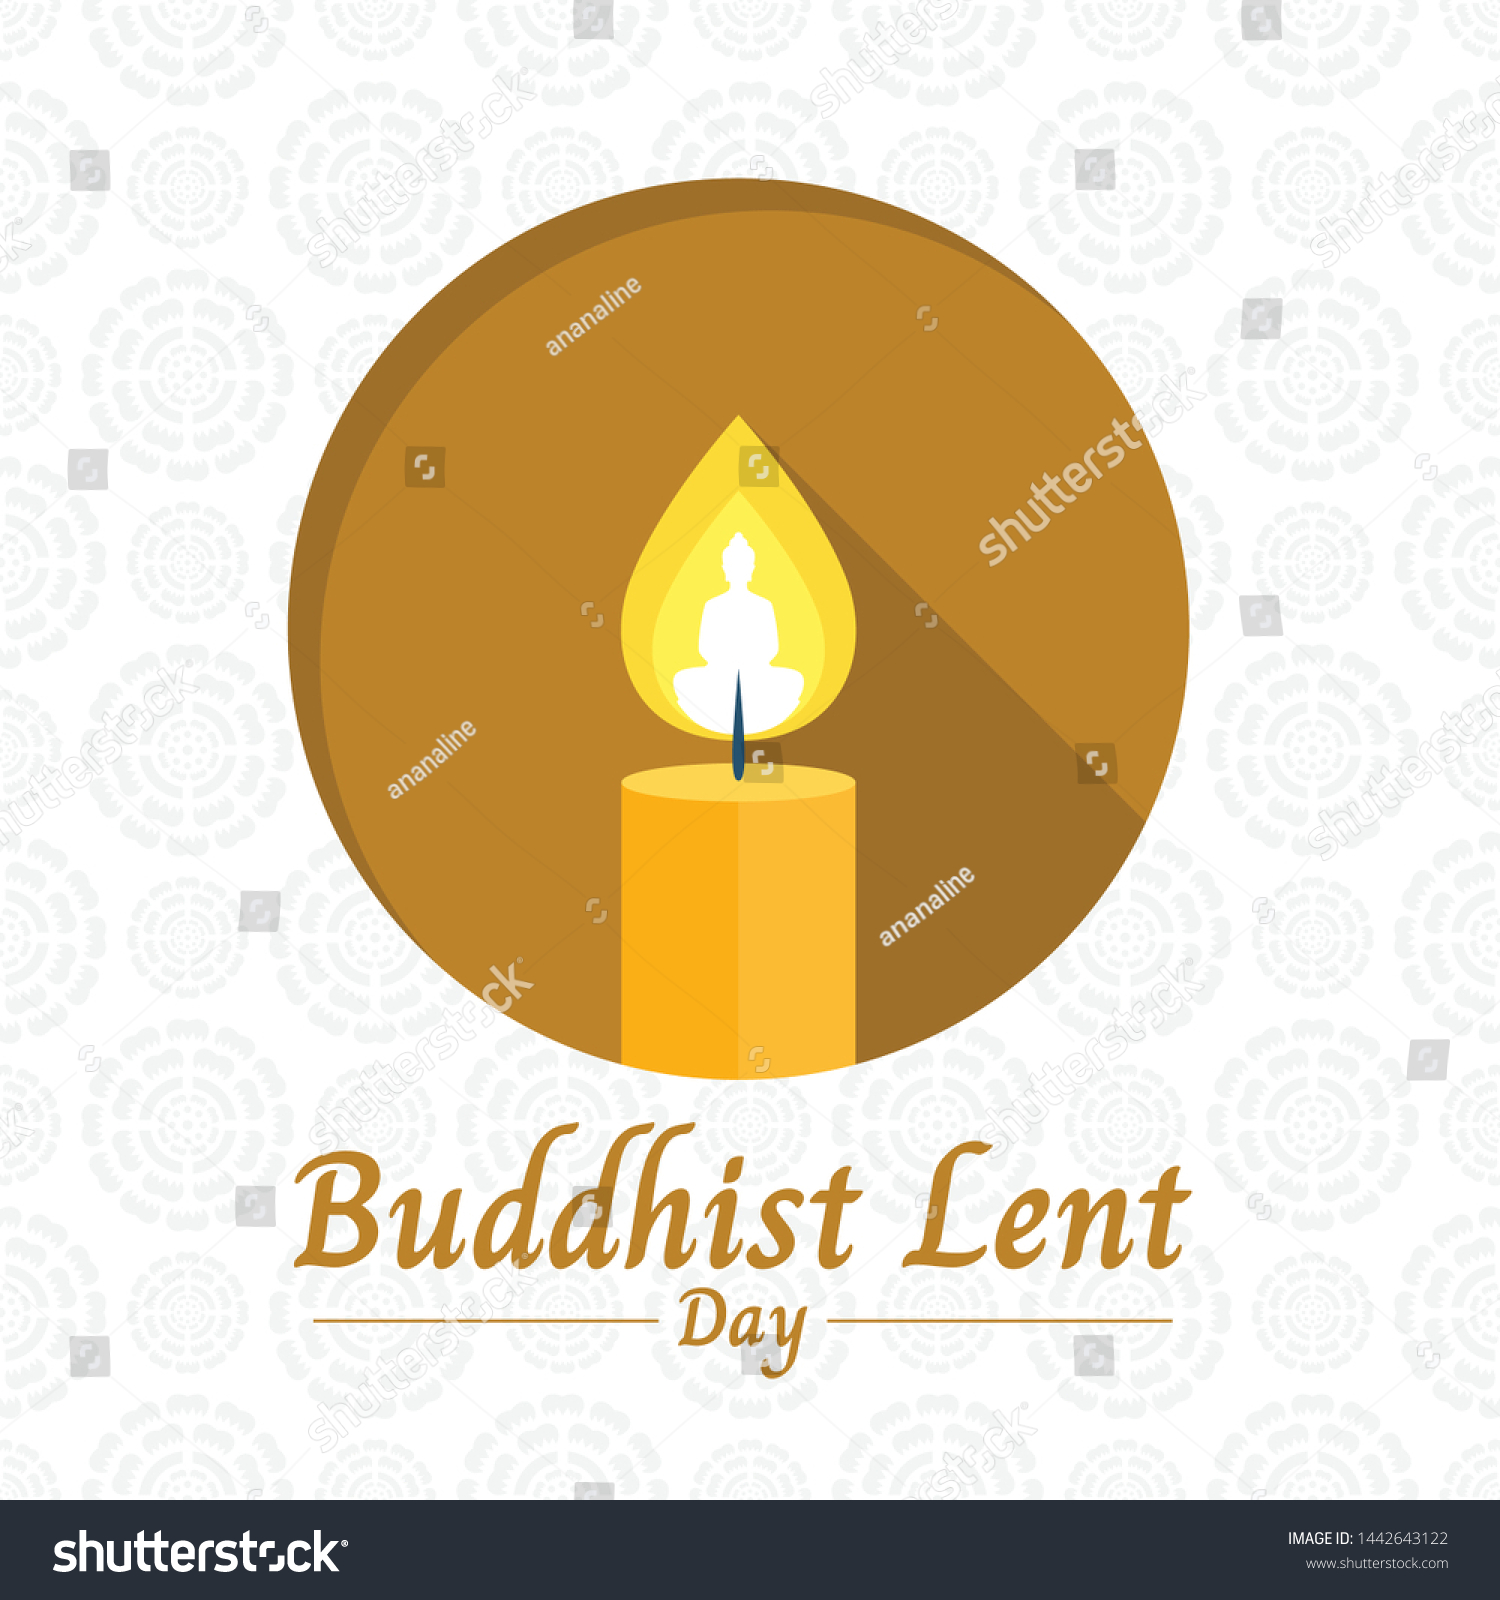 The Buddhist Lent Day Stock Vectors Images Vector Art 1500x1600